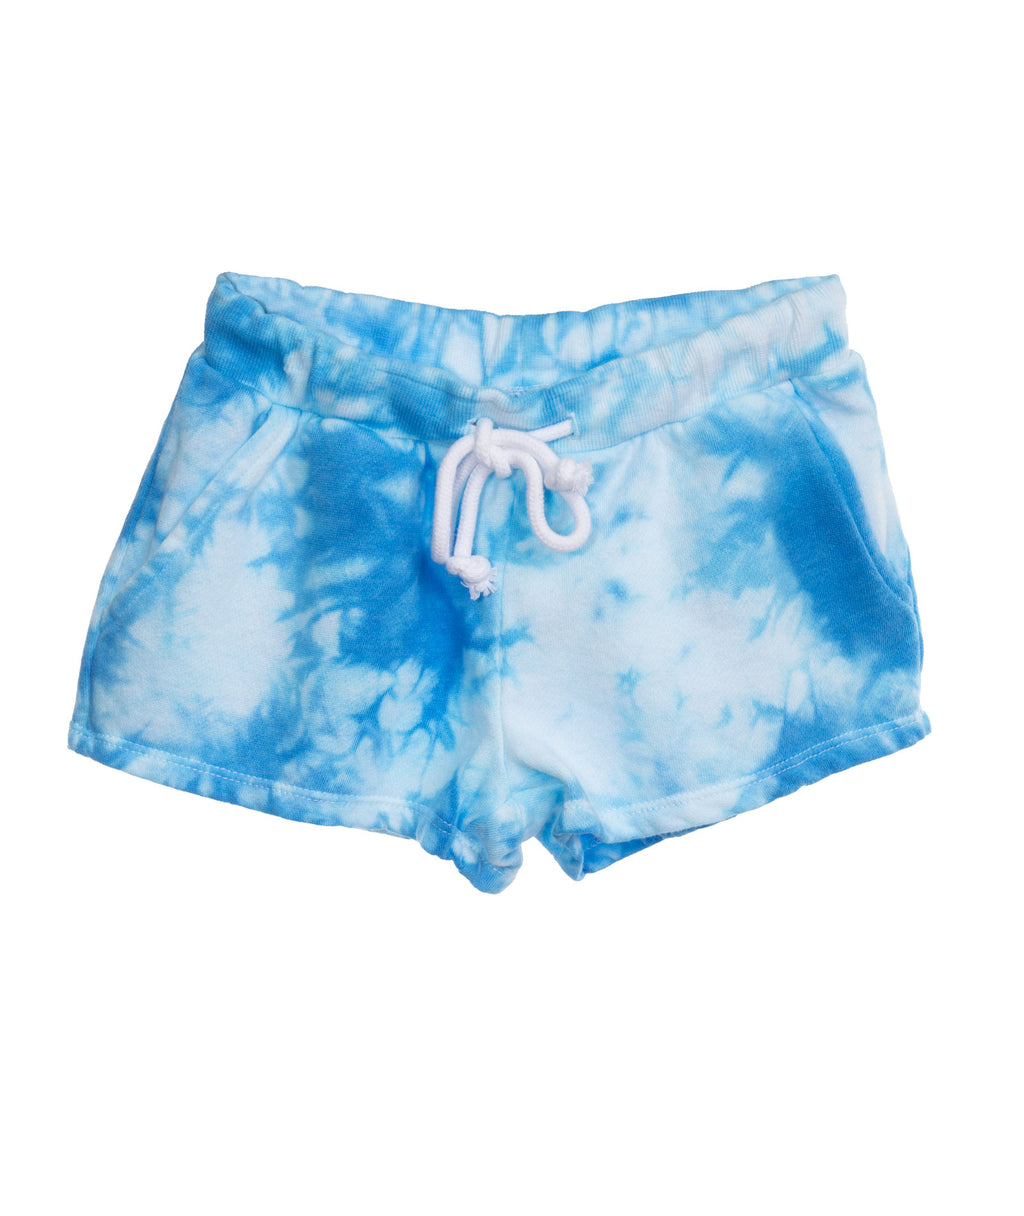 Katie J NYC Girls Frenchie Blue and White Tie-Dye Shorts